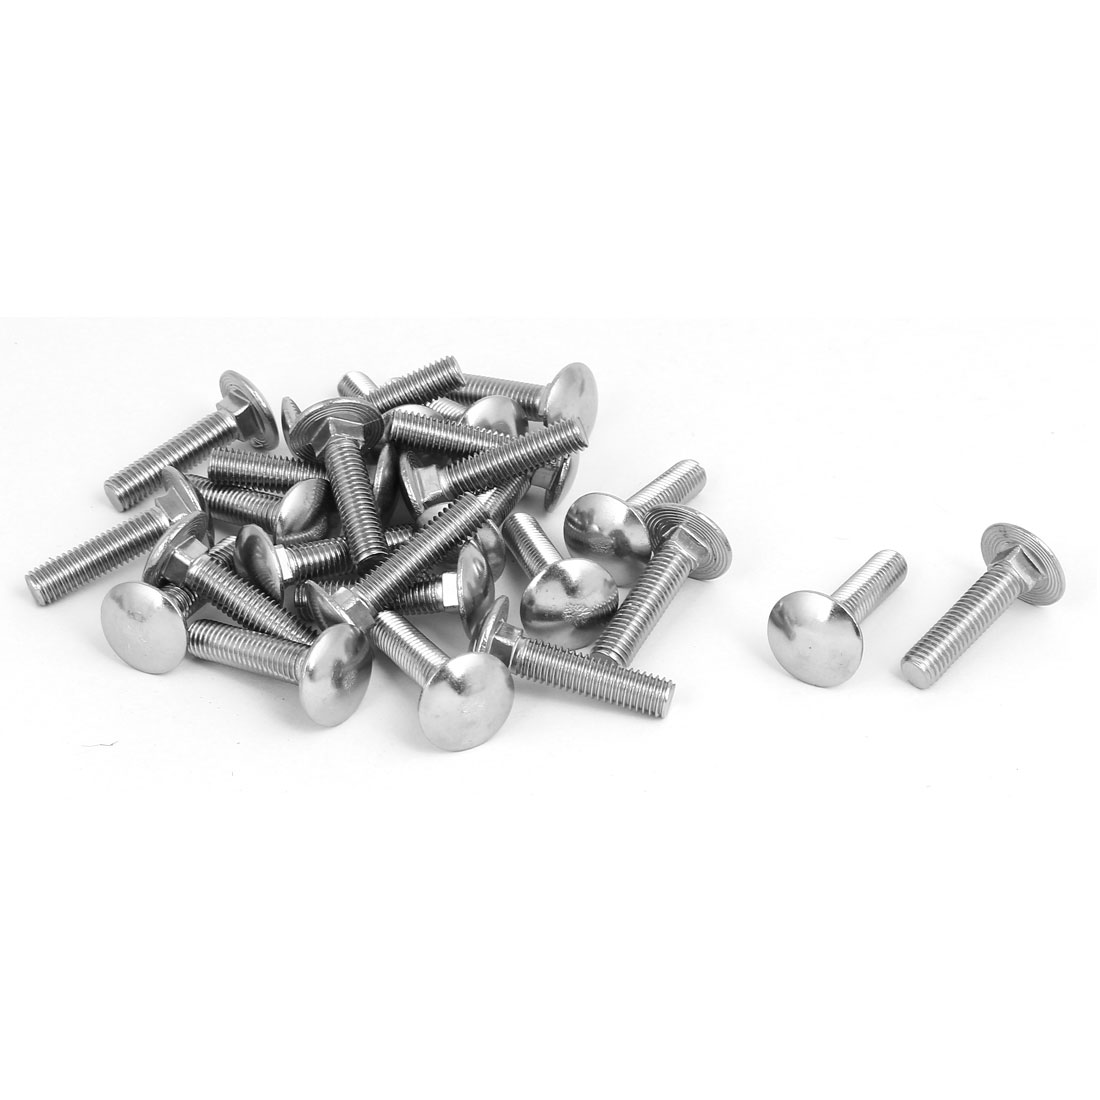 M8x35mm 304 Stainless Steel Round Cap Square Neck Trailer Carriage Bolts 25pcs